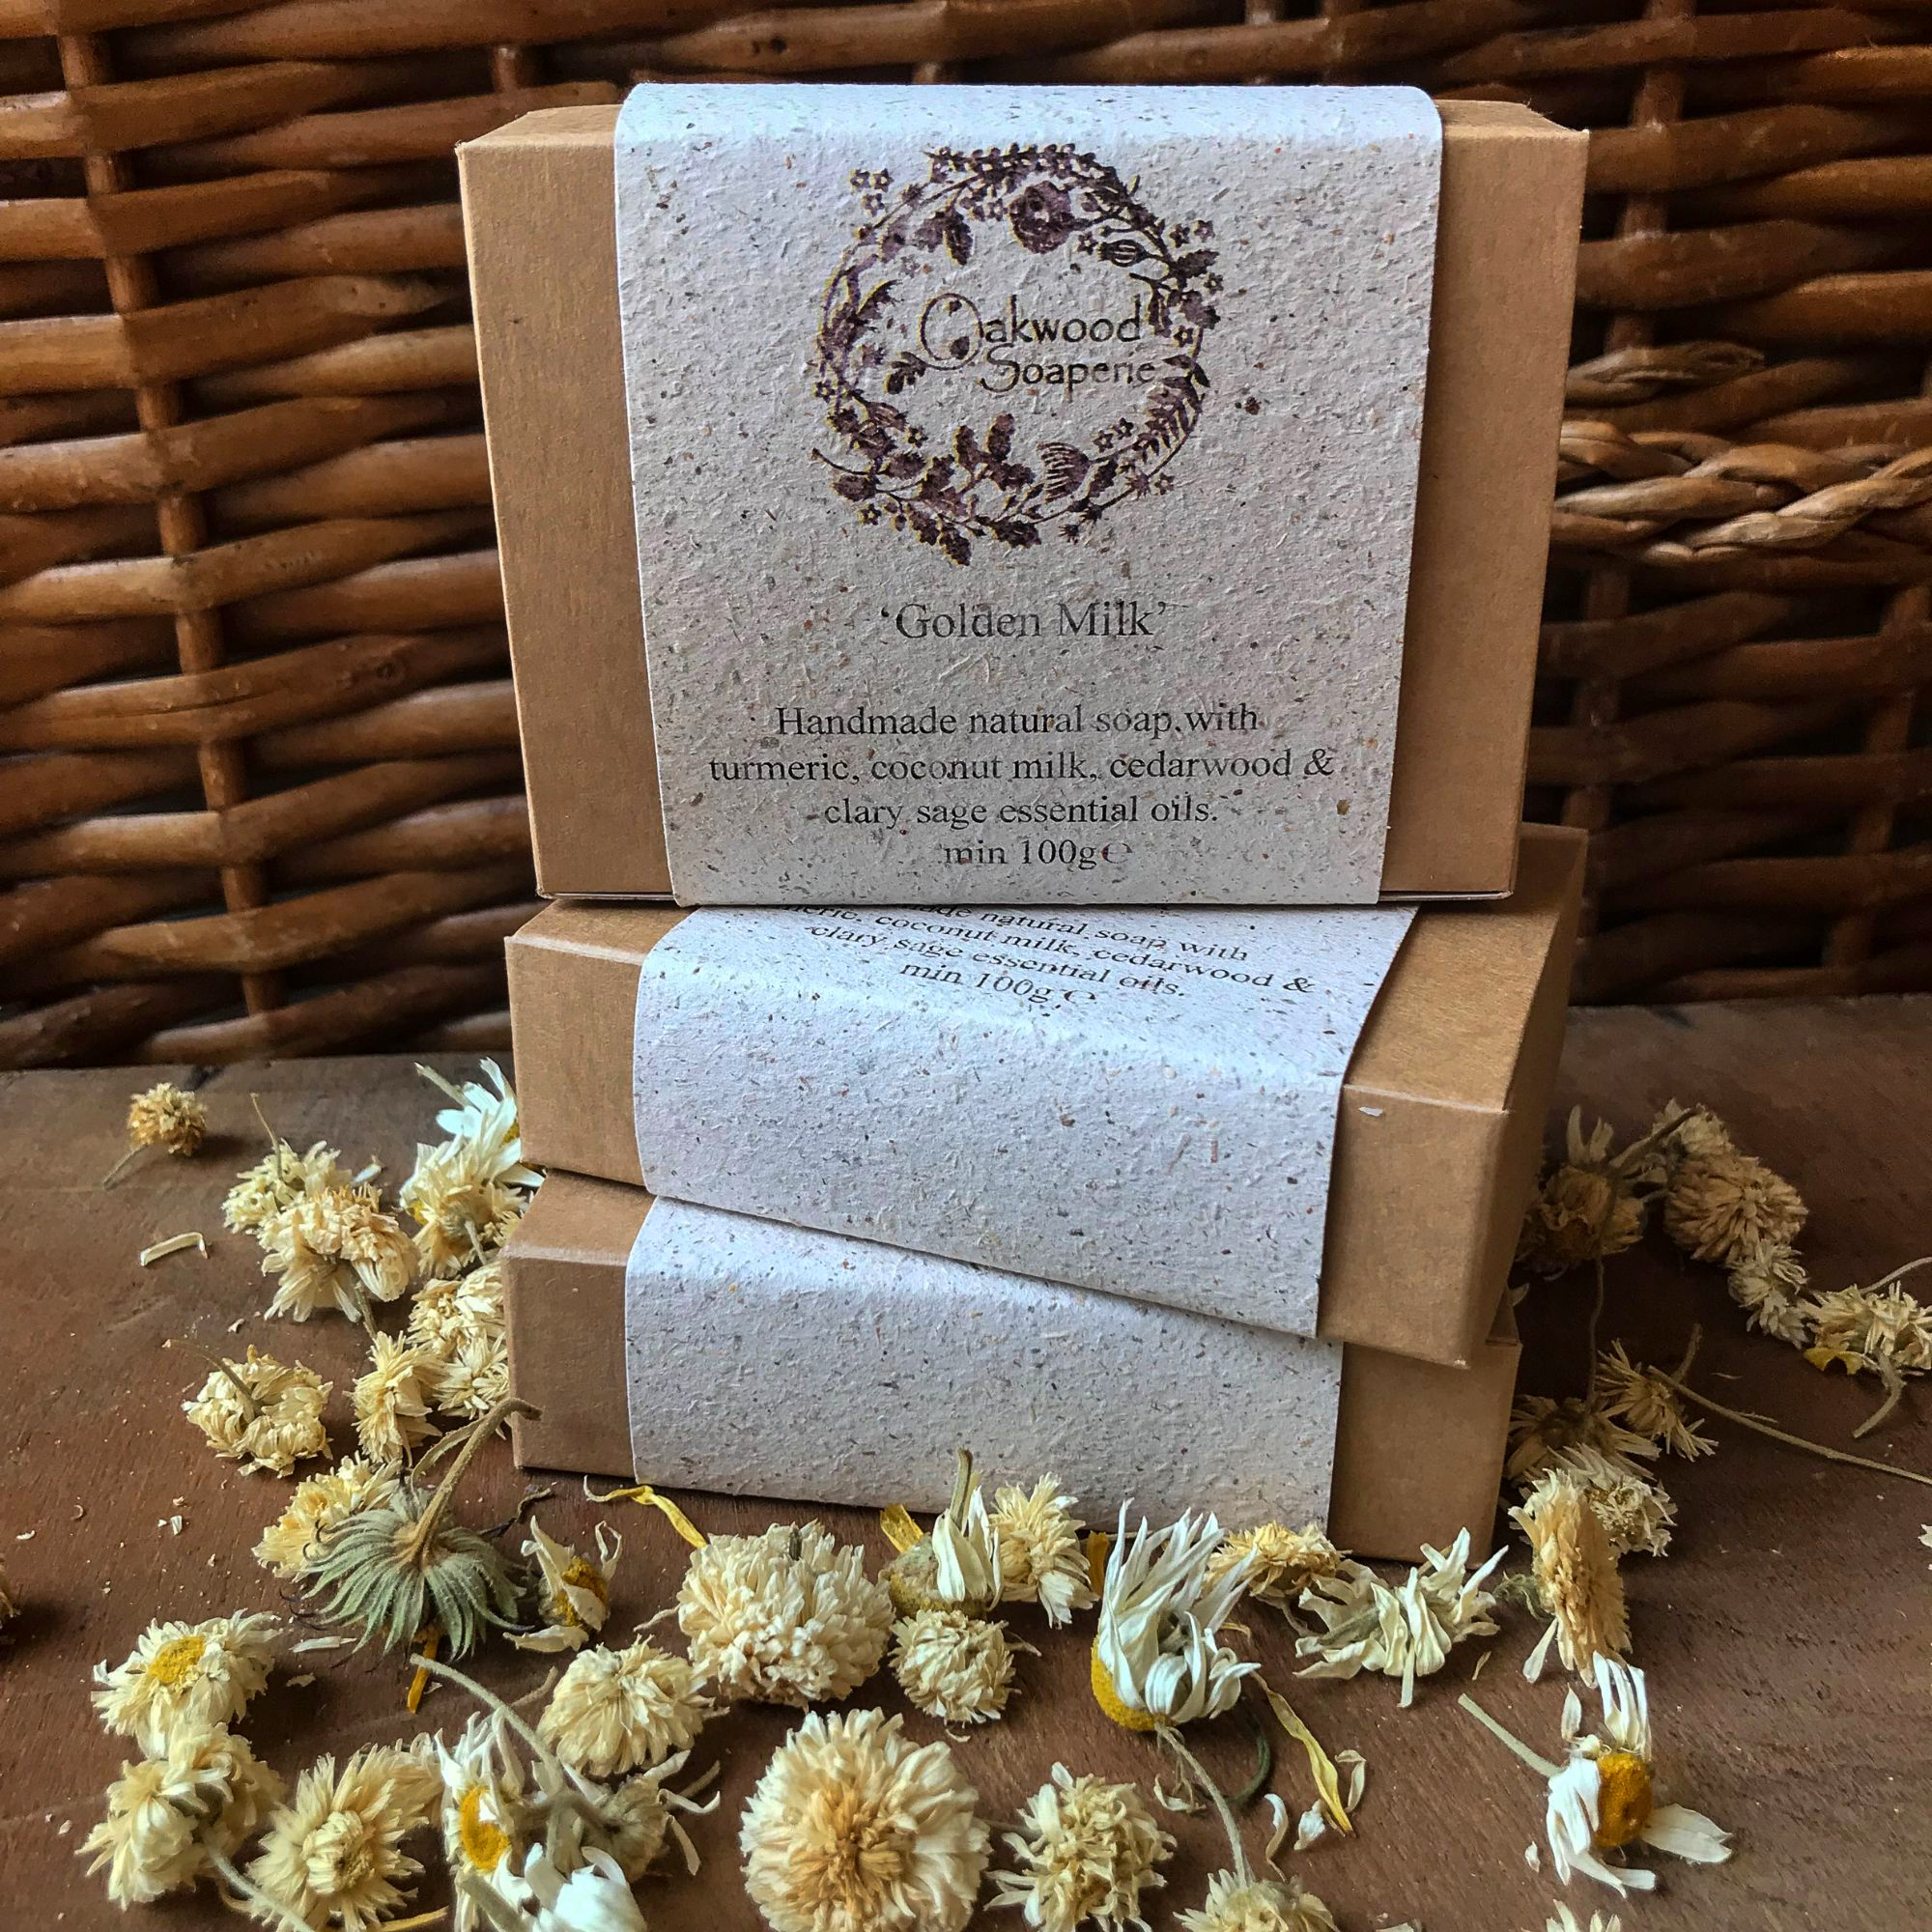 Ltd. edition Golden Milk Handmade soap